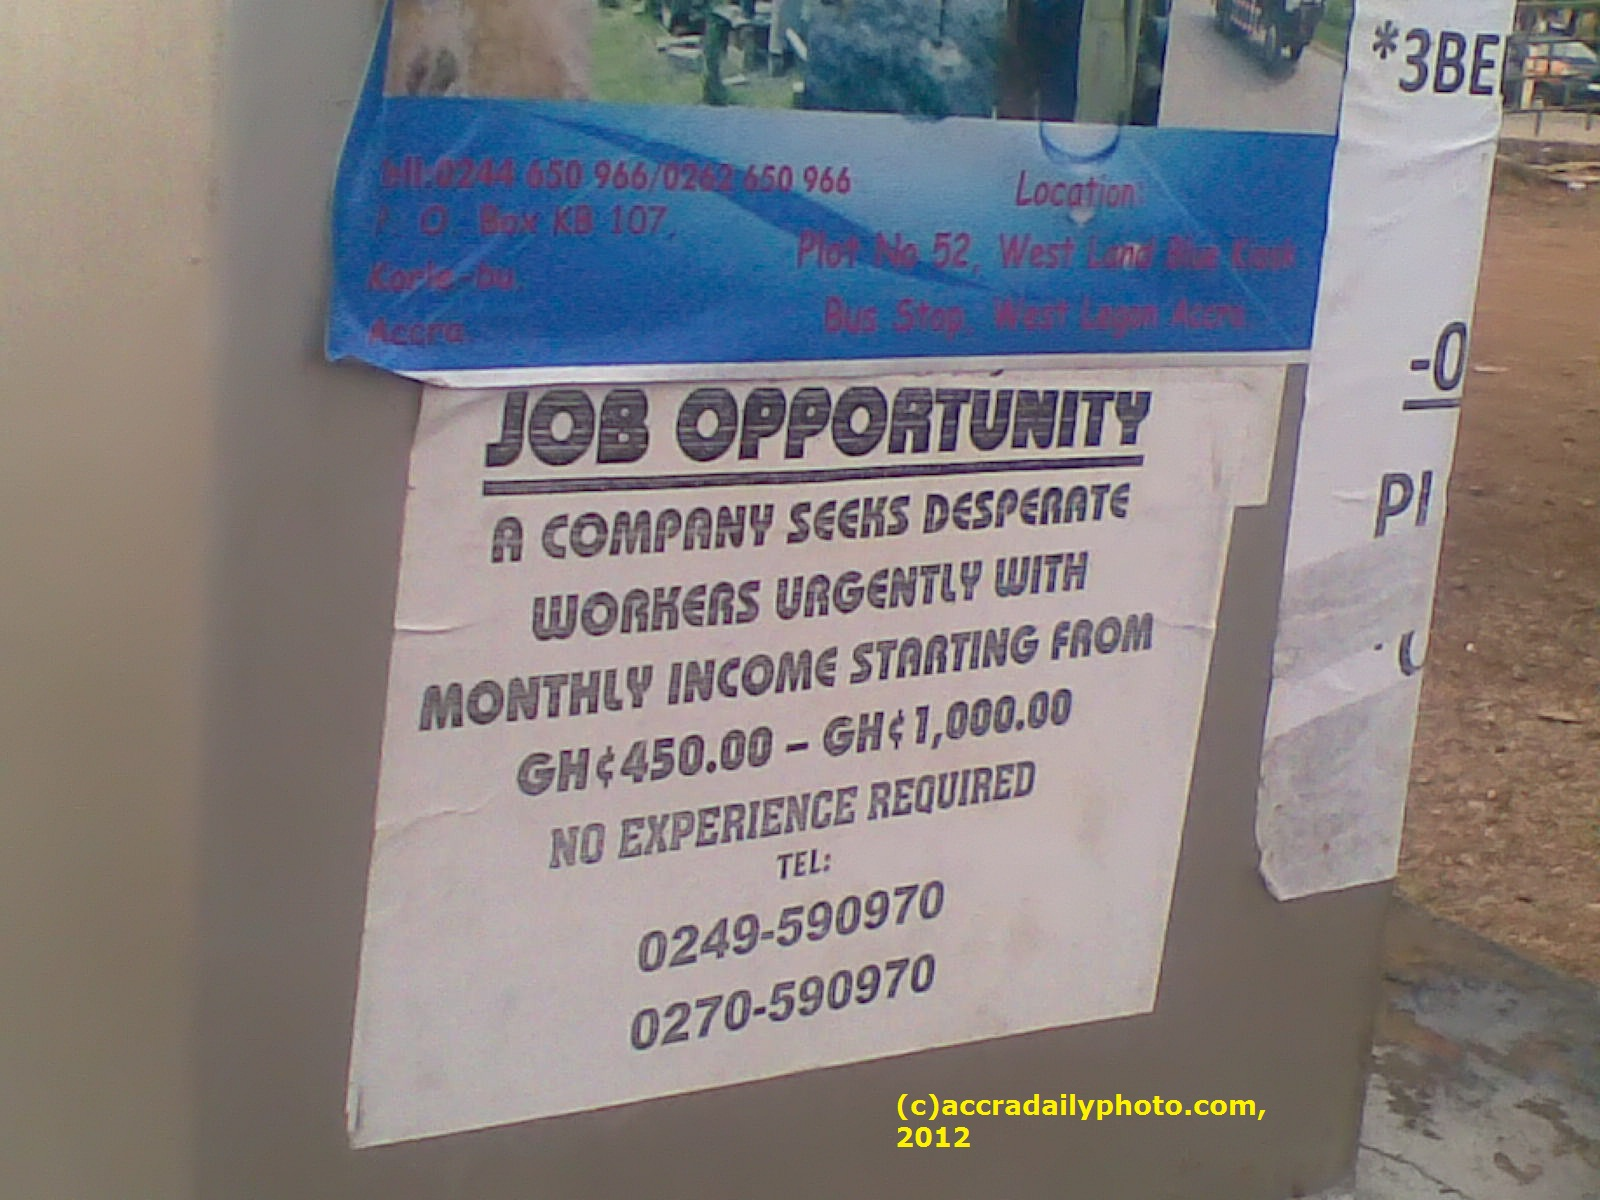 accra pictures by day night desperately seeking a job in accra desperately seeking a job in accra or seeking desperate job workers in accra